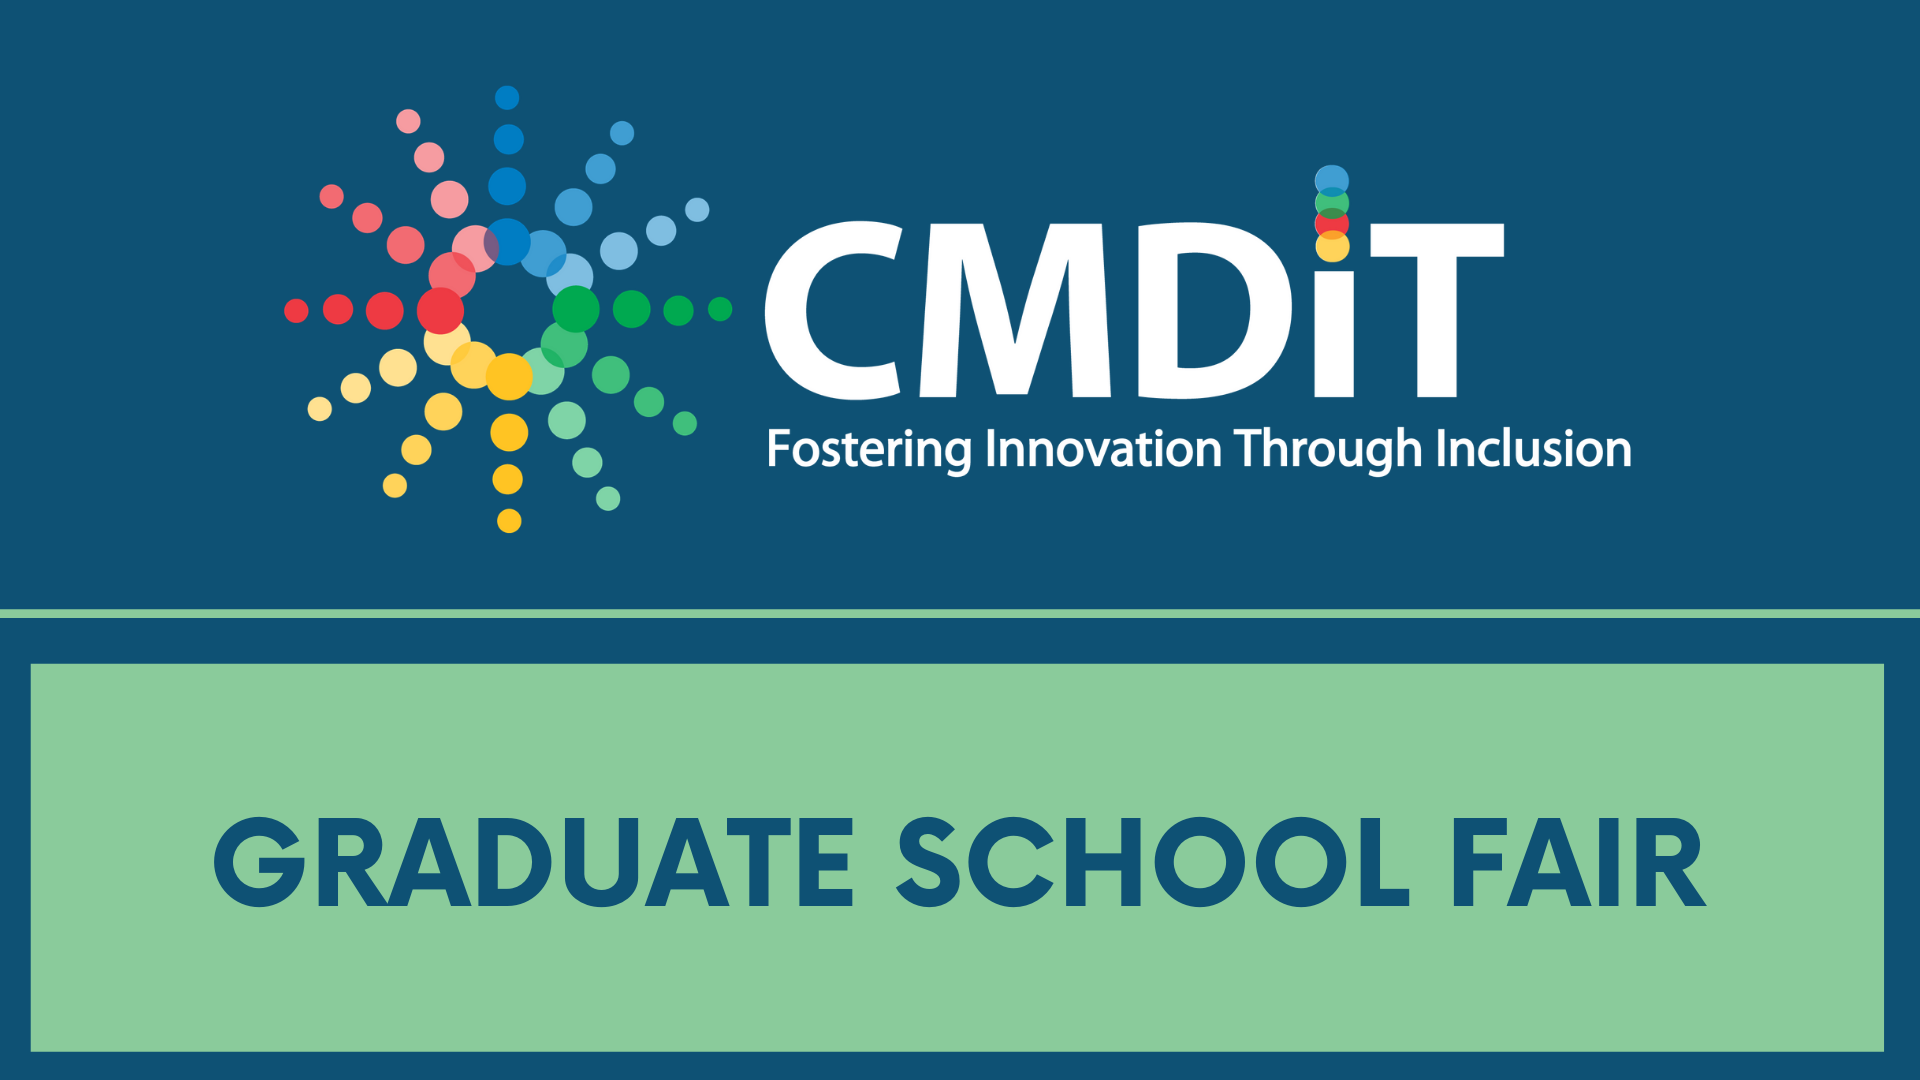 CMD-IT Graduate School Fair for Tech